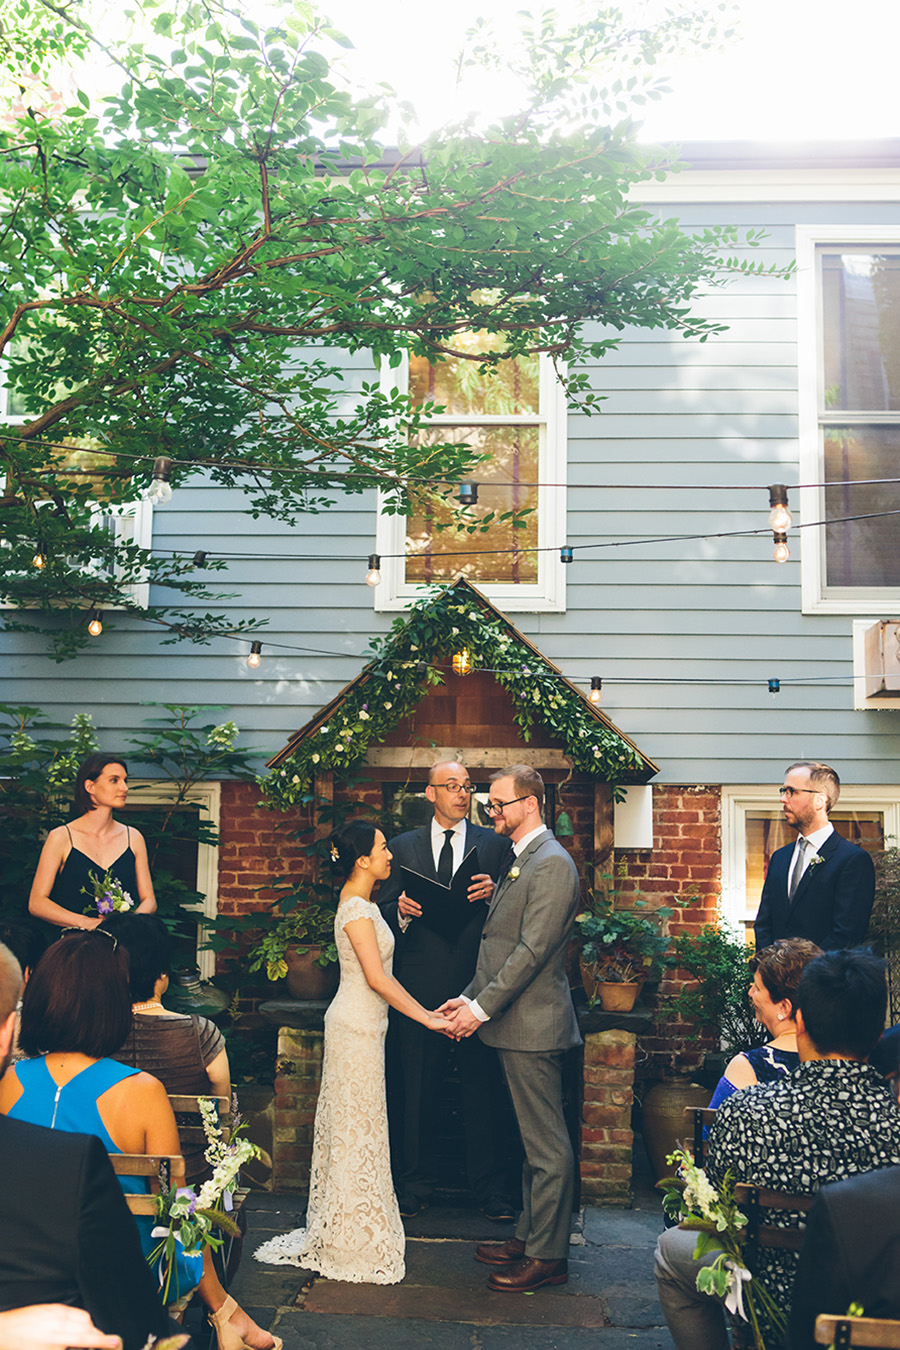 NEW-YORK-CITY-WEDDING-PHOTOGRAPHER-VINEGAR-HILL-HOUSE-INTIMATE-DUMBO-WEDDING-ELOPEMENT-MANHATTAN-BROOKLYN-WEDDING-PHOTOGRAPHY-0050.jpg